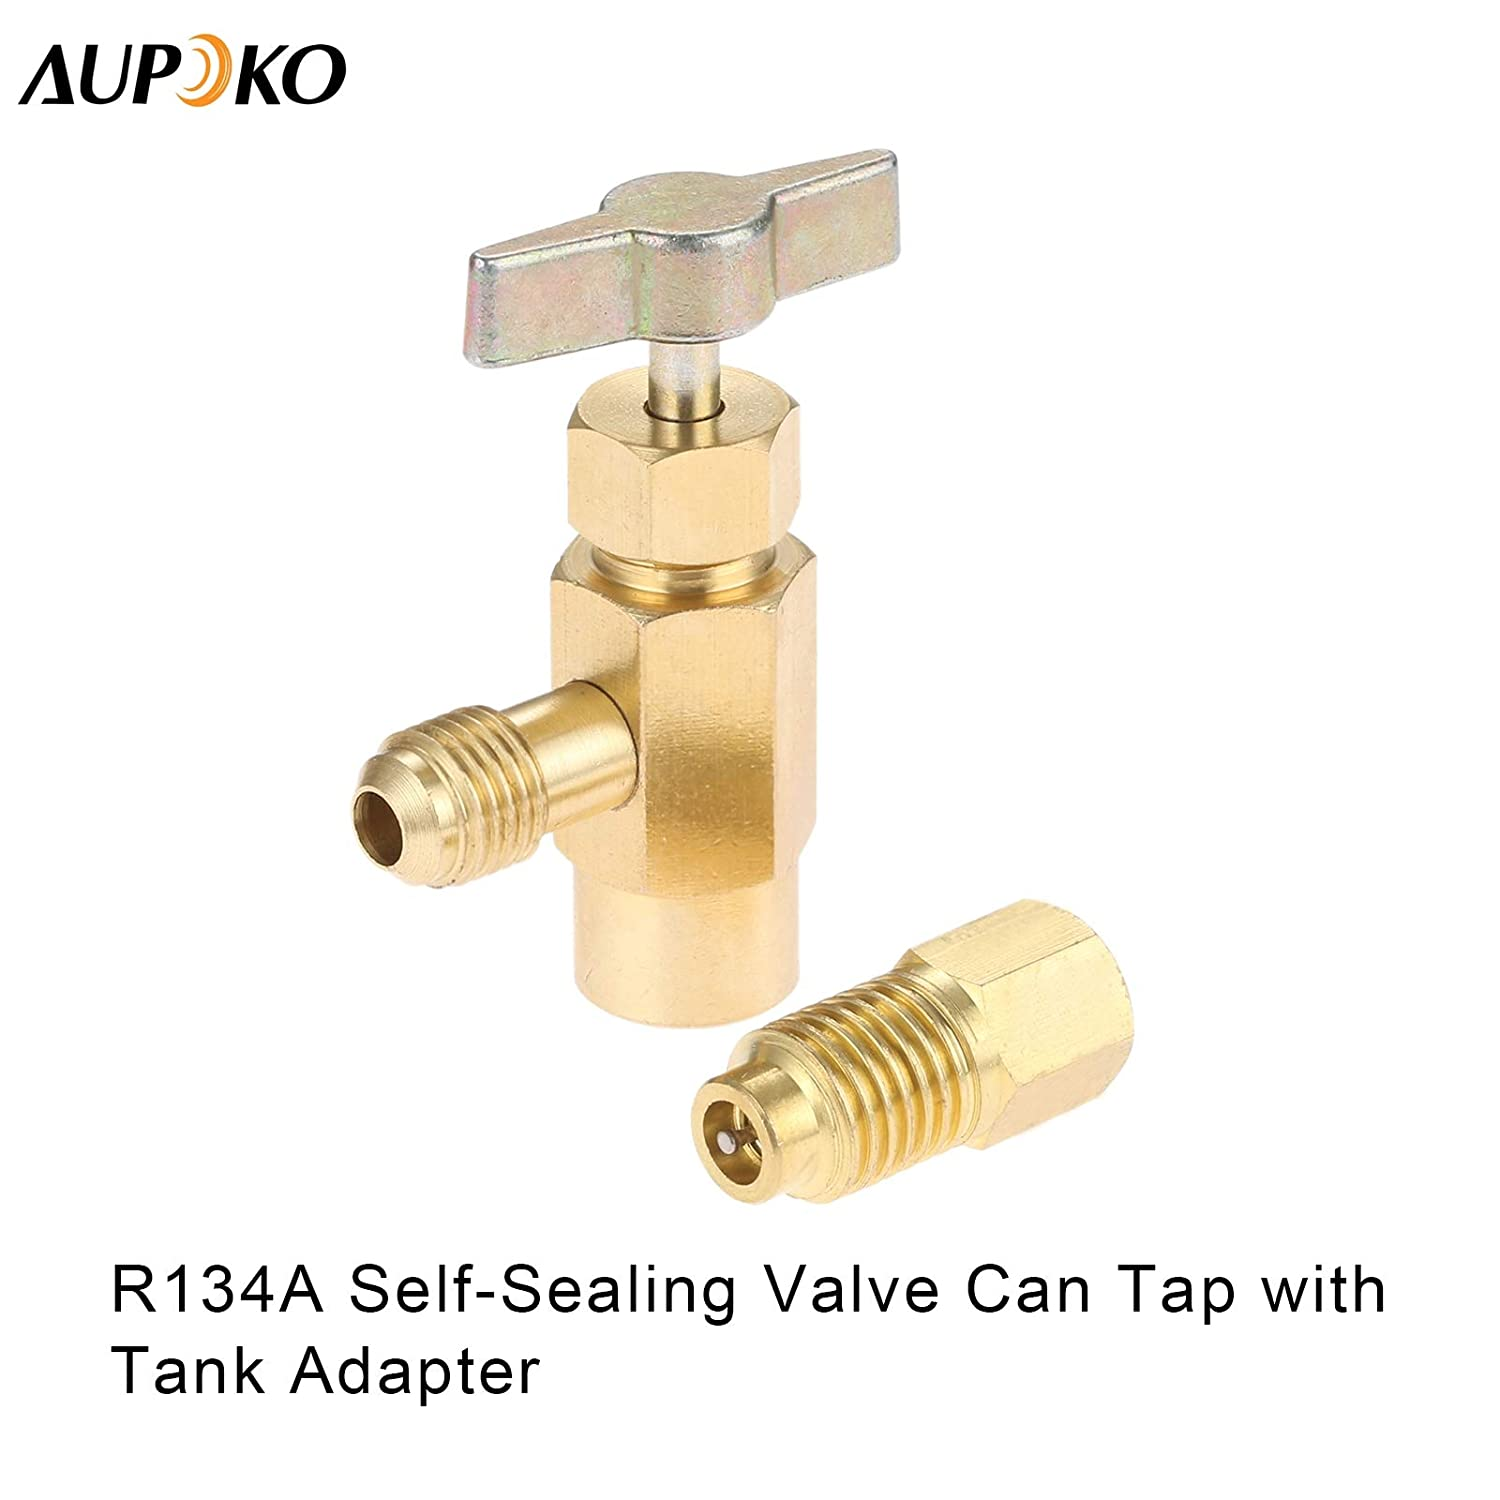 1//2/'/' Acme to 1//4/'/' SAE Refrigerant Can Bottle Tap Opener with 1//4/'/' SAE Female and 1//2/'/' Acme Male Adapter R134A Self-Sealing Can Tap with R134A Tank Adapter Fits for Air Conditioner Manifold